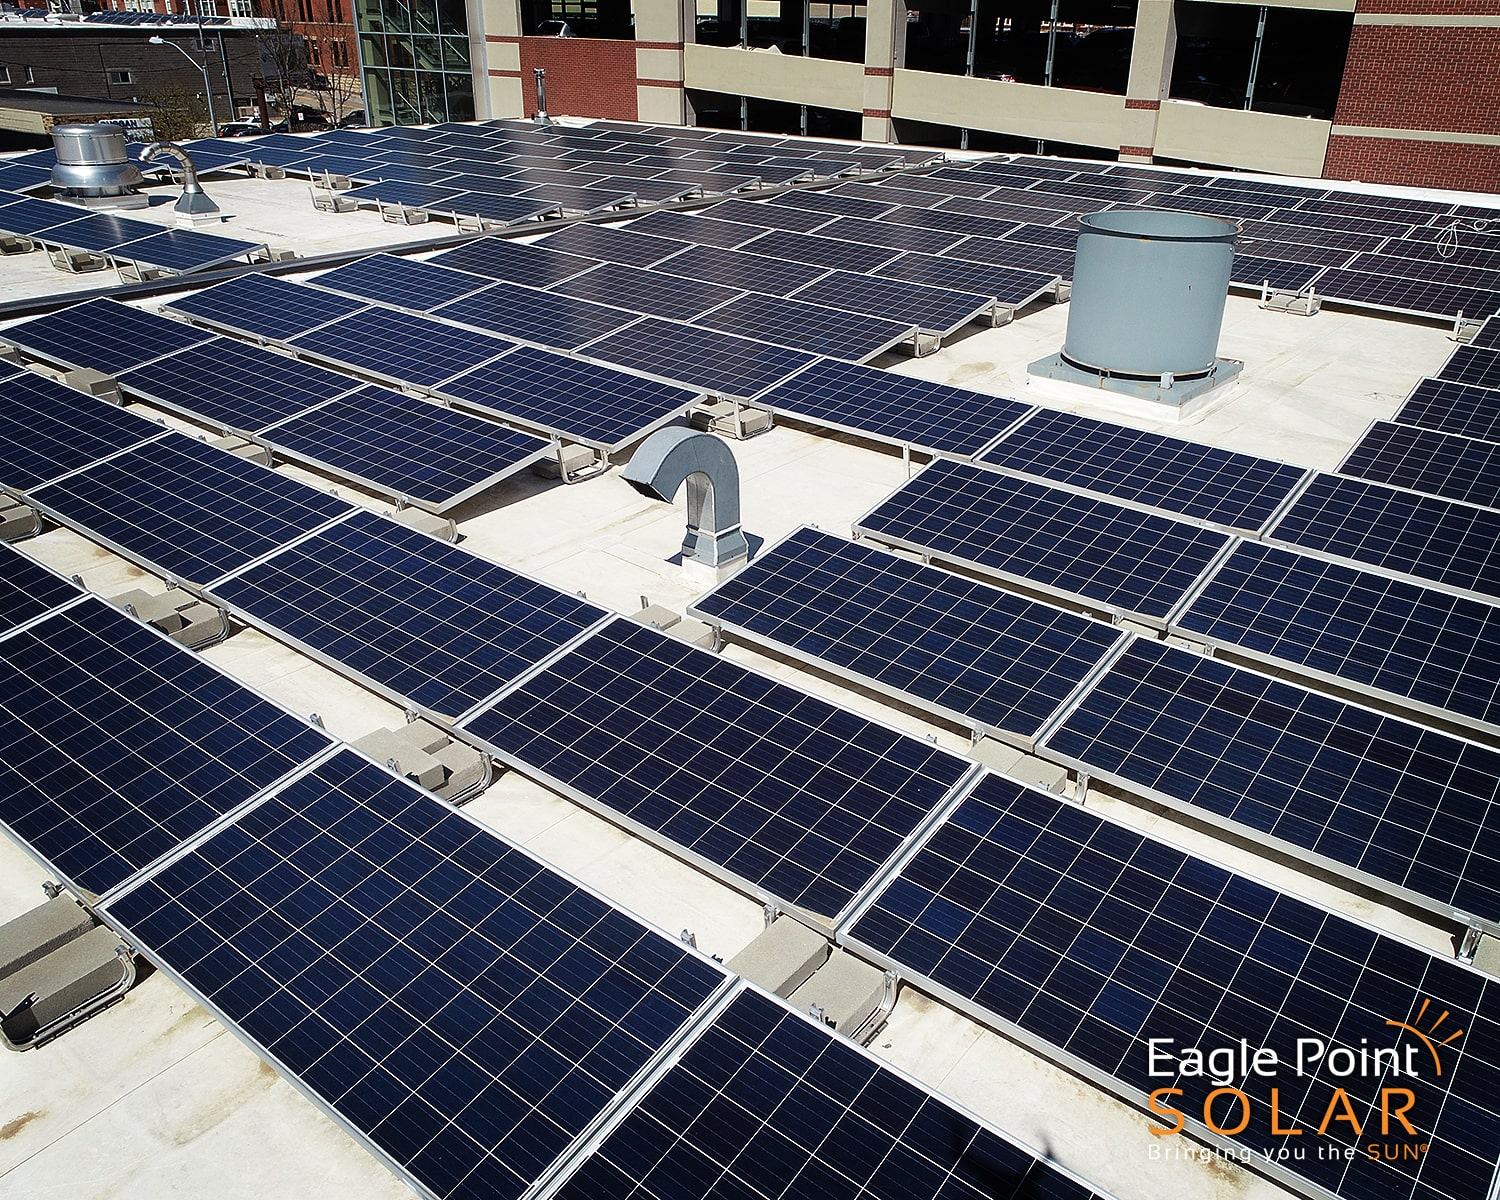 Close up photo of roof mounted solar array for Dubuque Fire Station